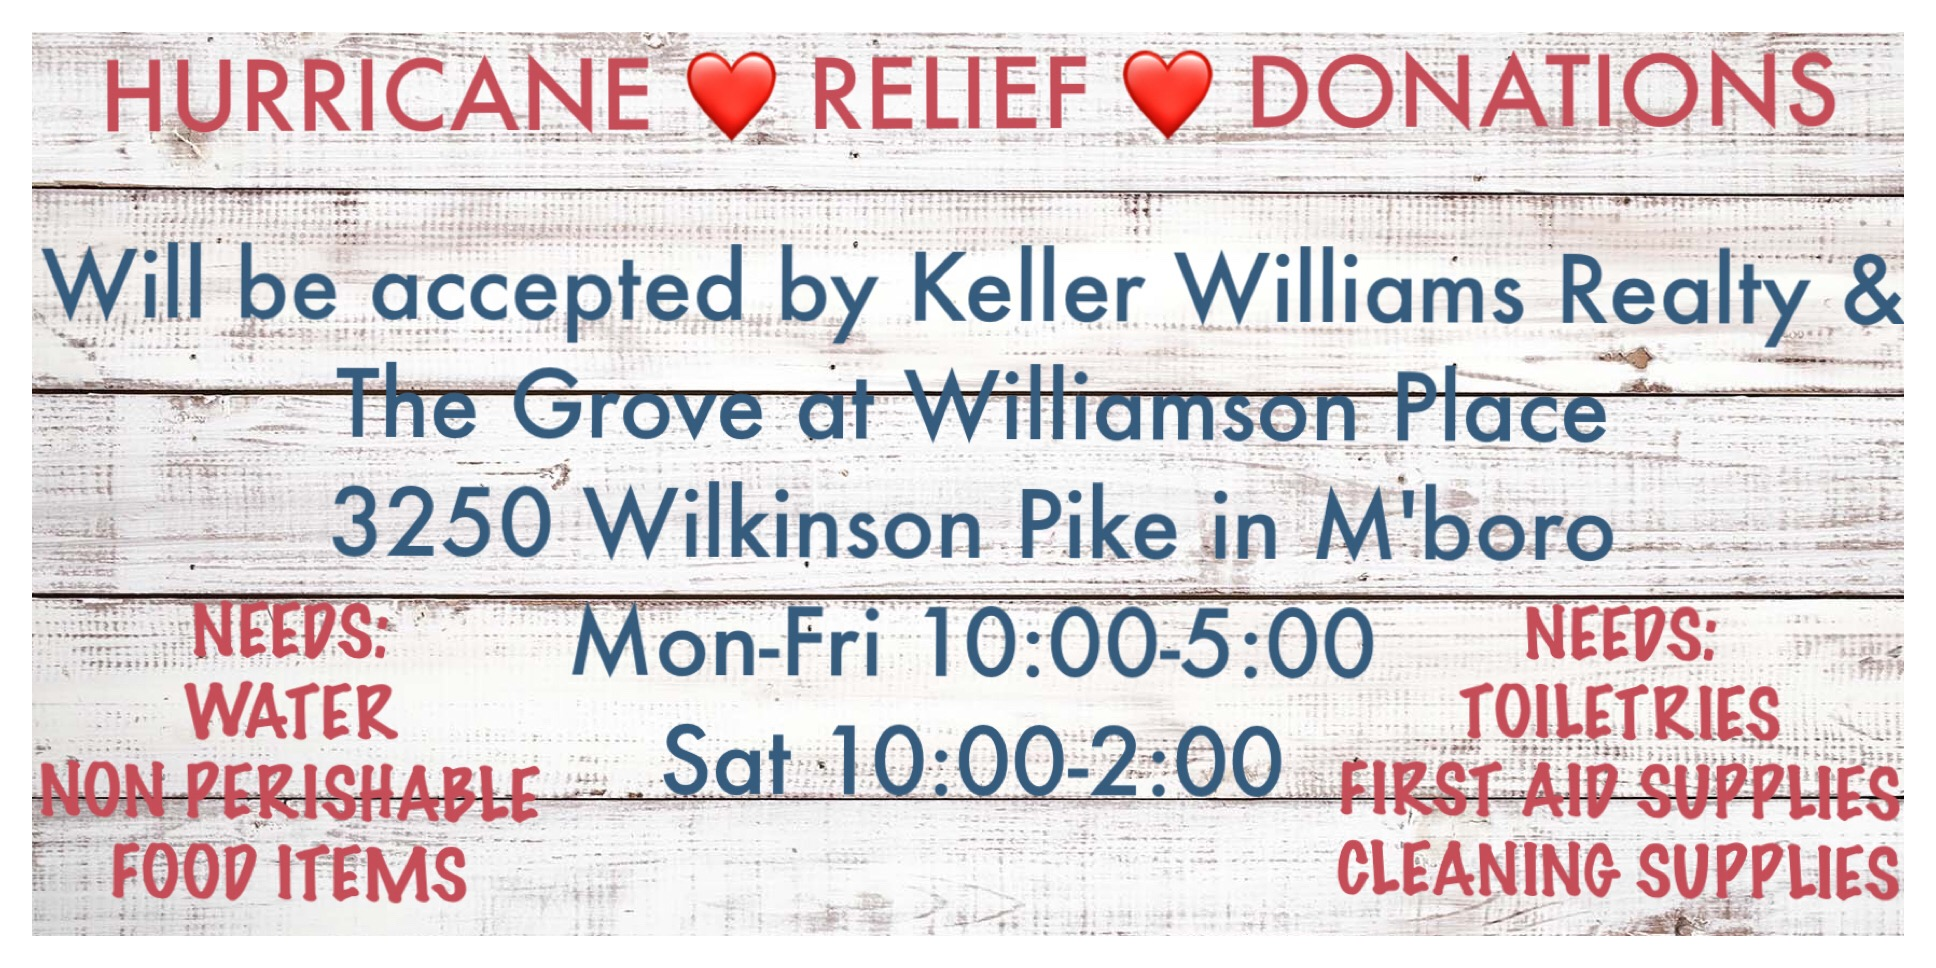 Hurricane Relief Donations being collected in Murfreesboro